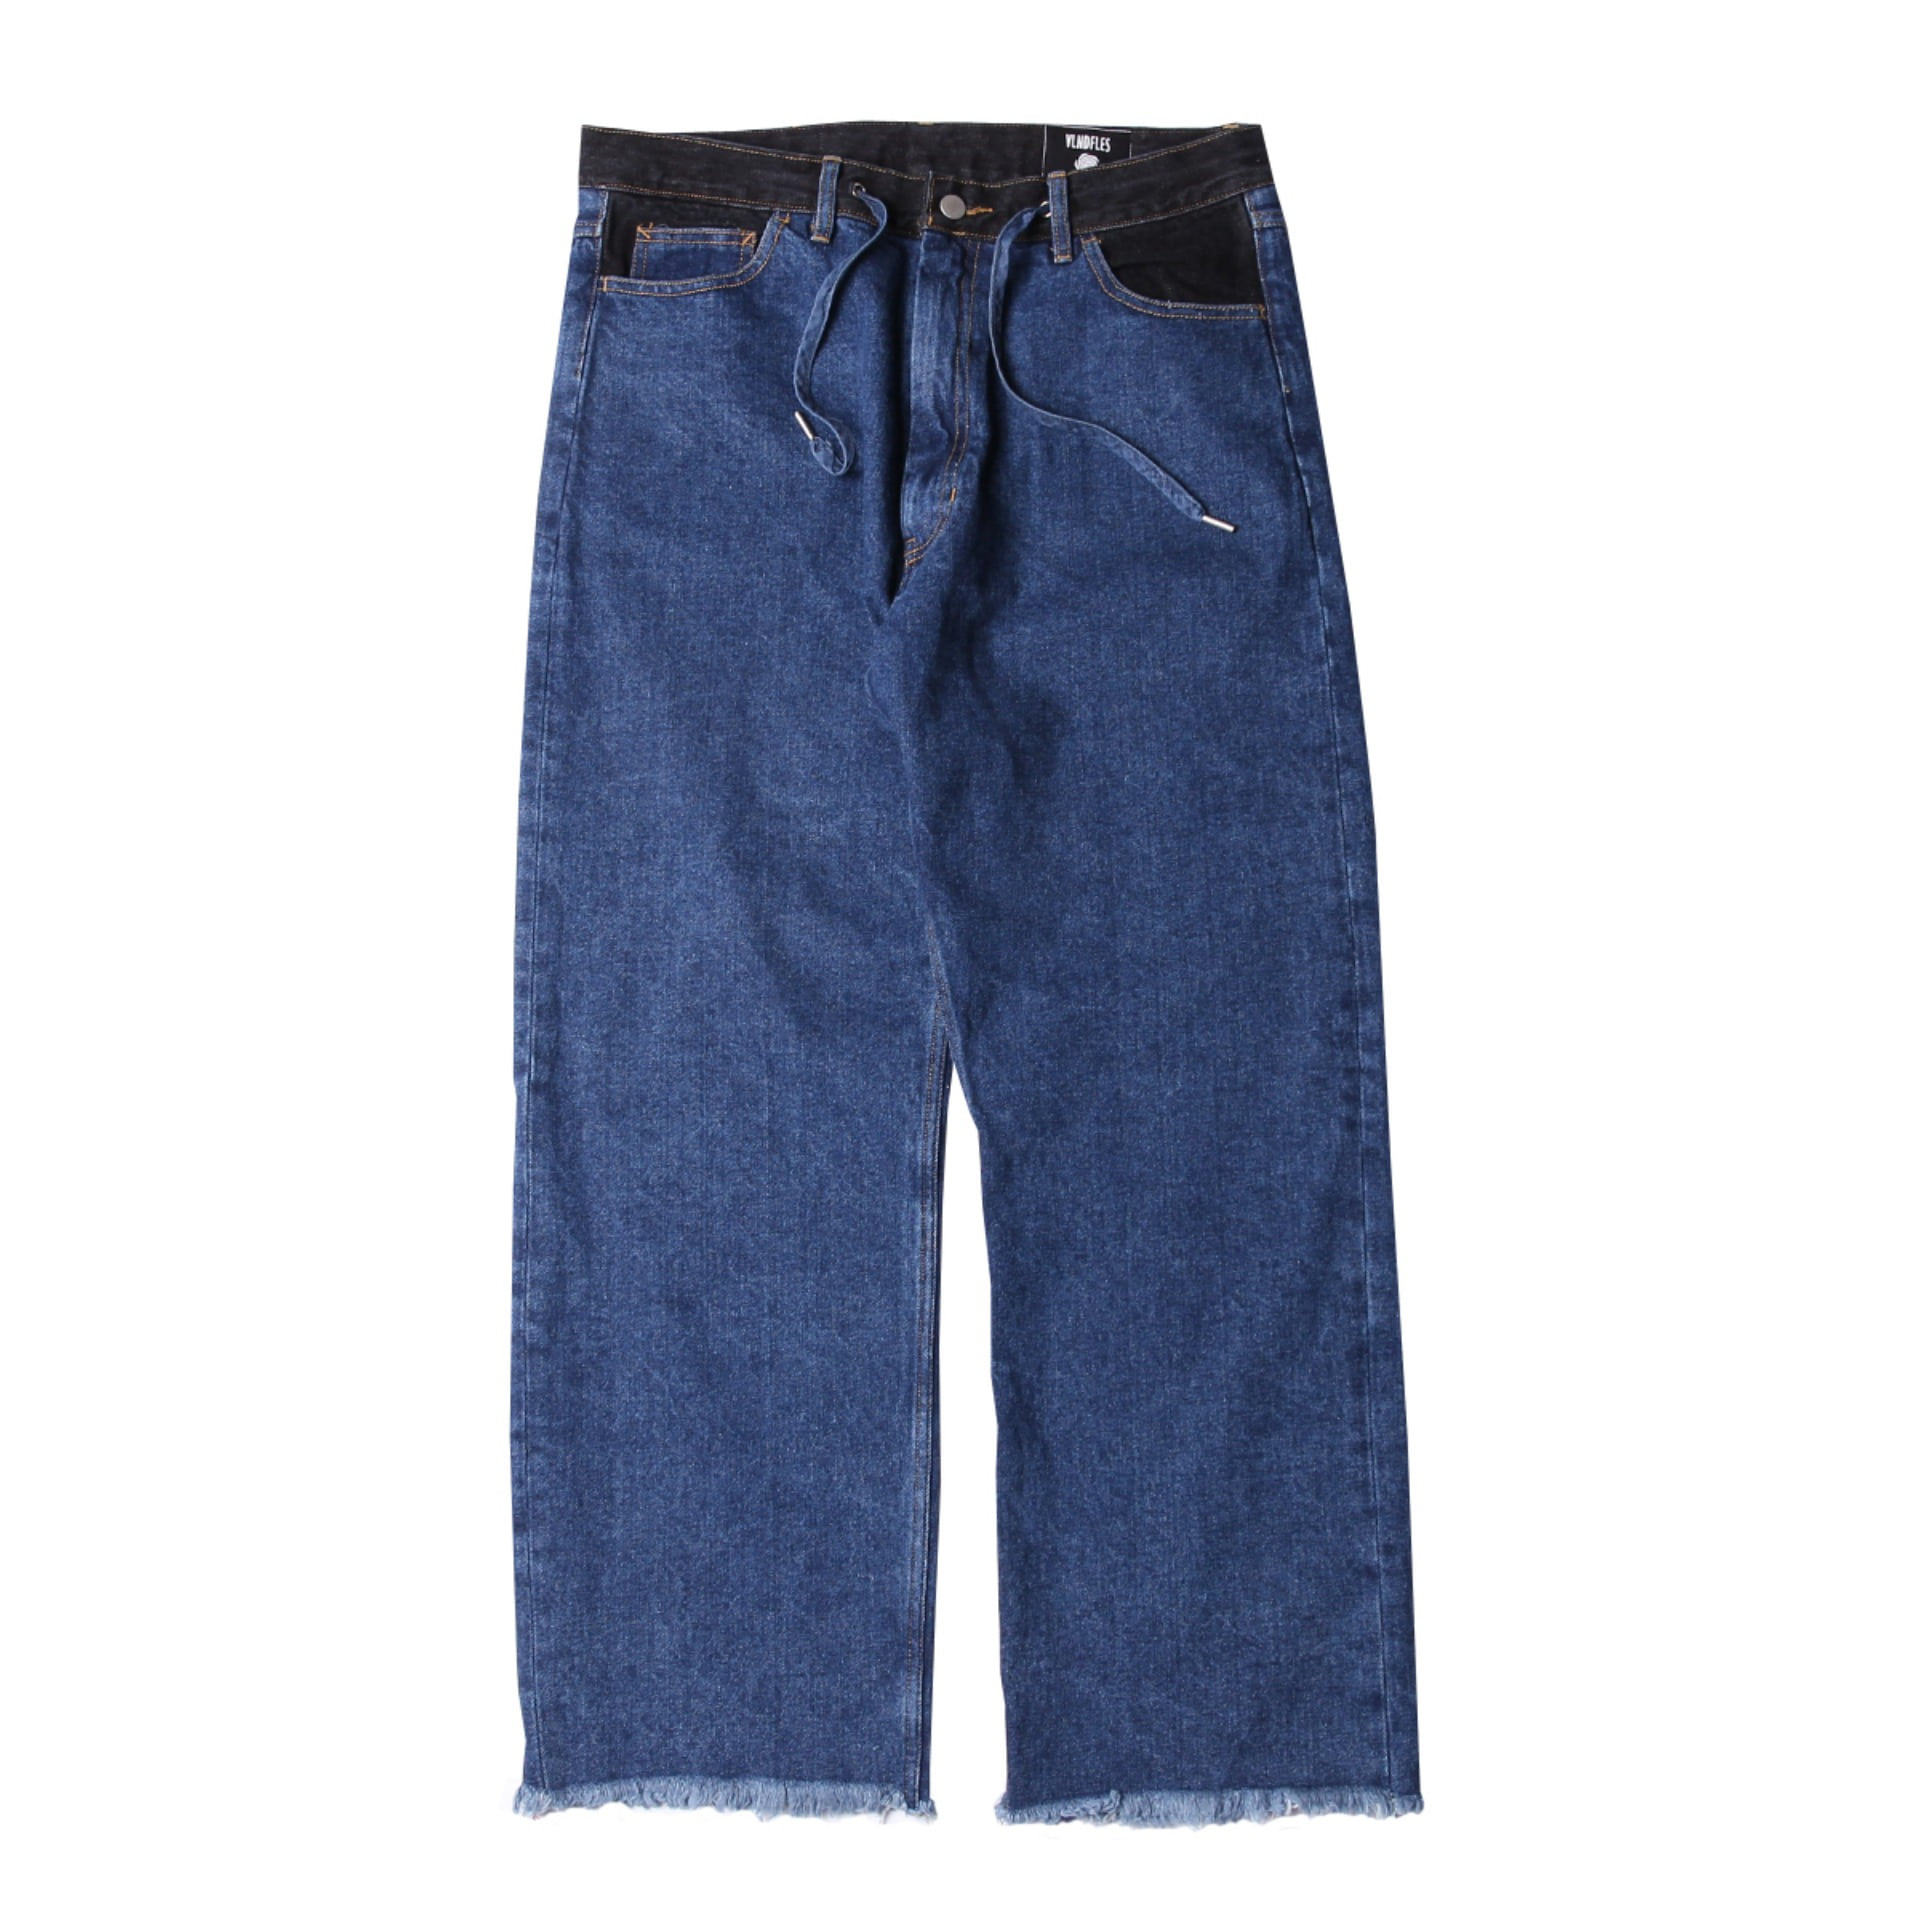 ARRANGEMENT DENIM PANTS(Vintage Indigo)